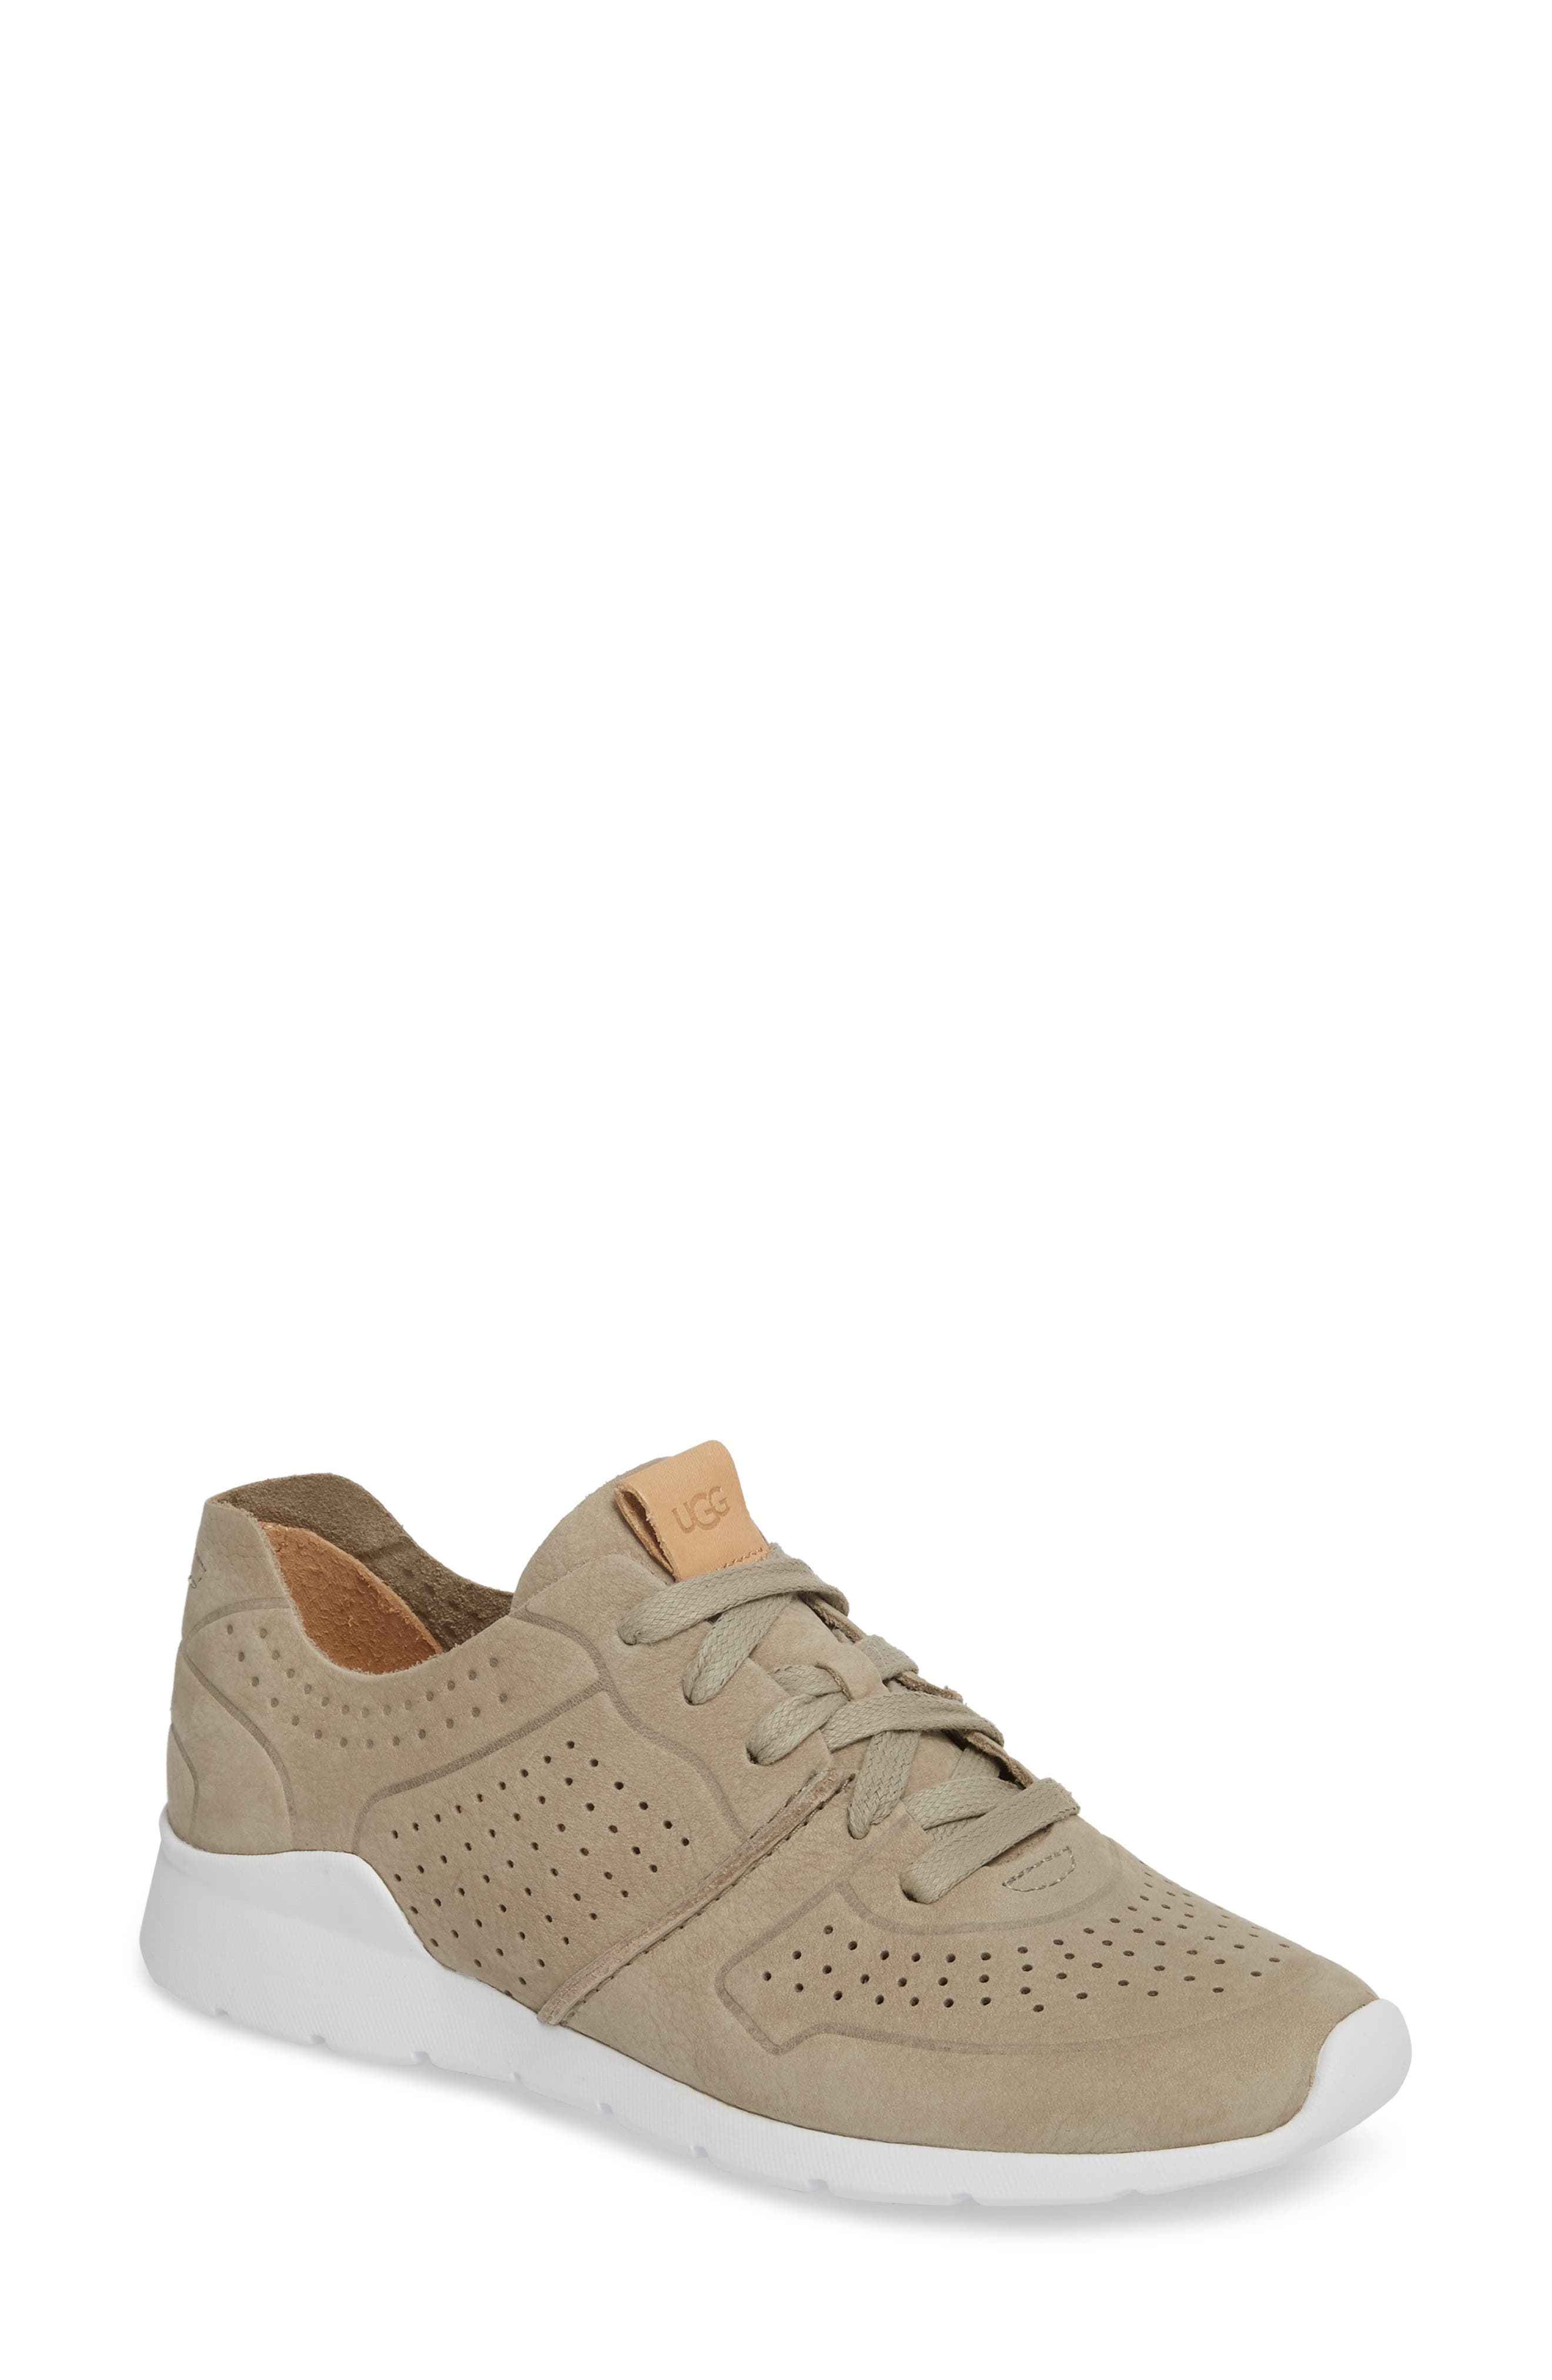 Tye Sneaker,                         Main,                         color, Drizzle Nubuck Leather